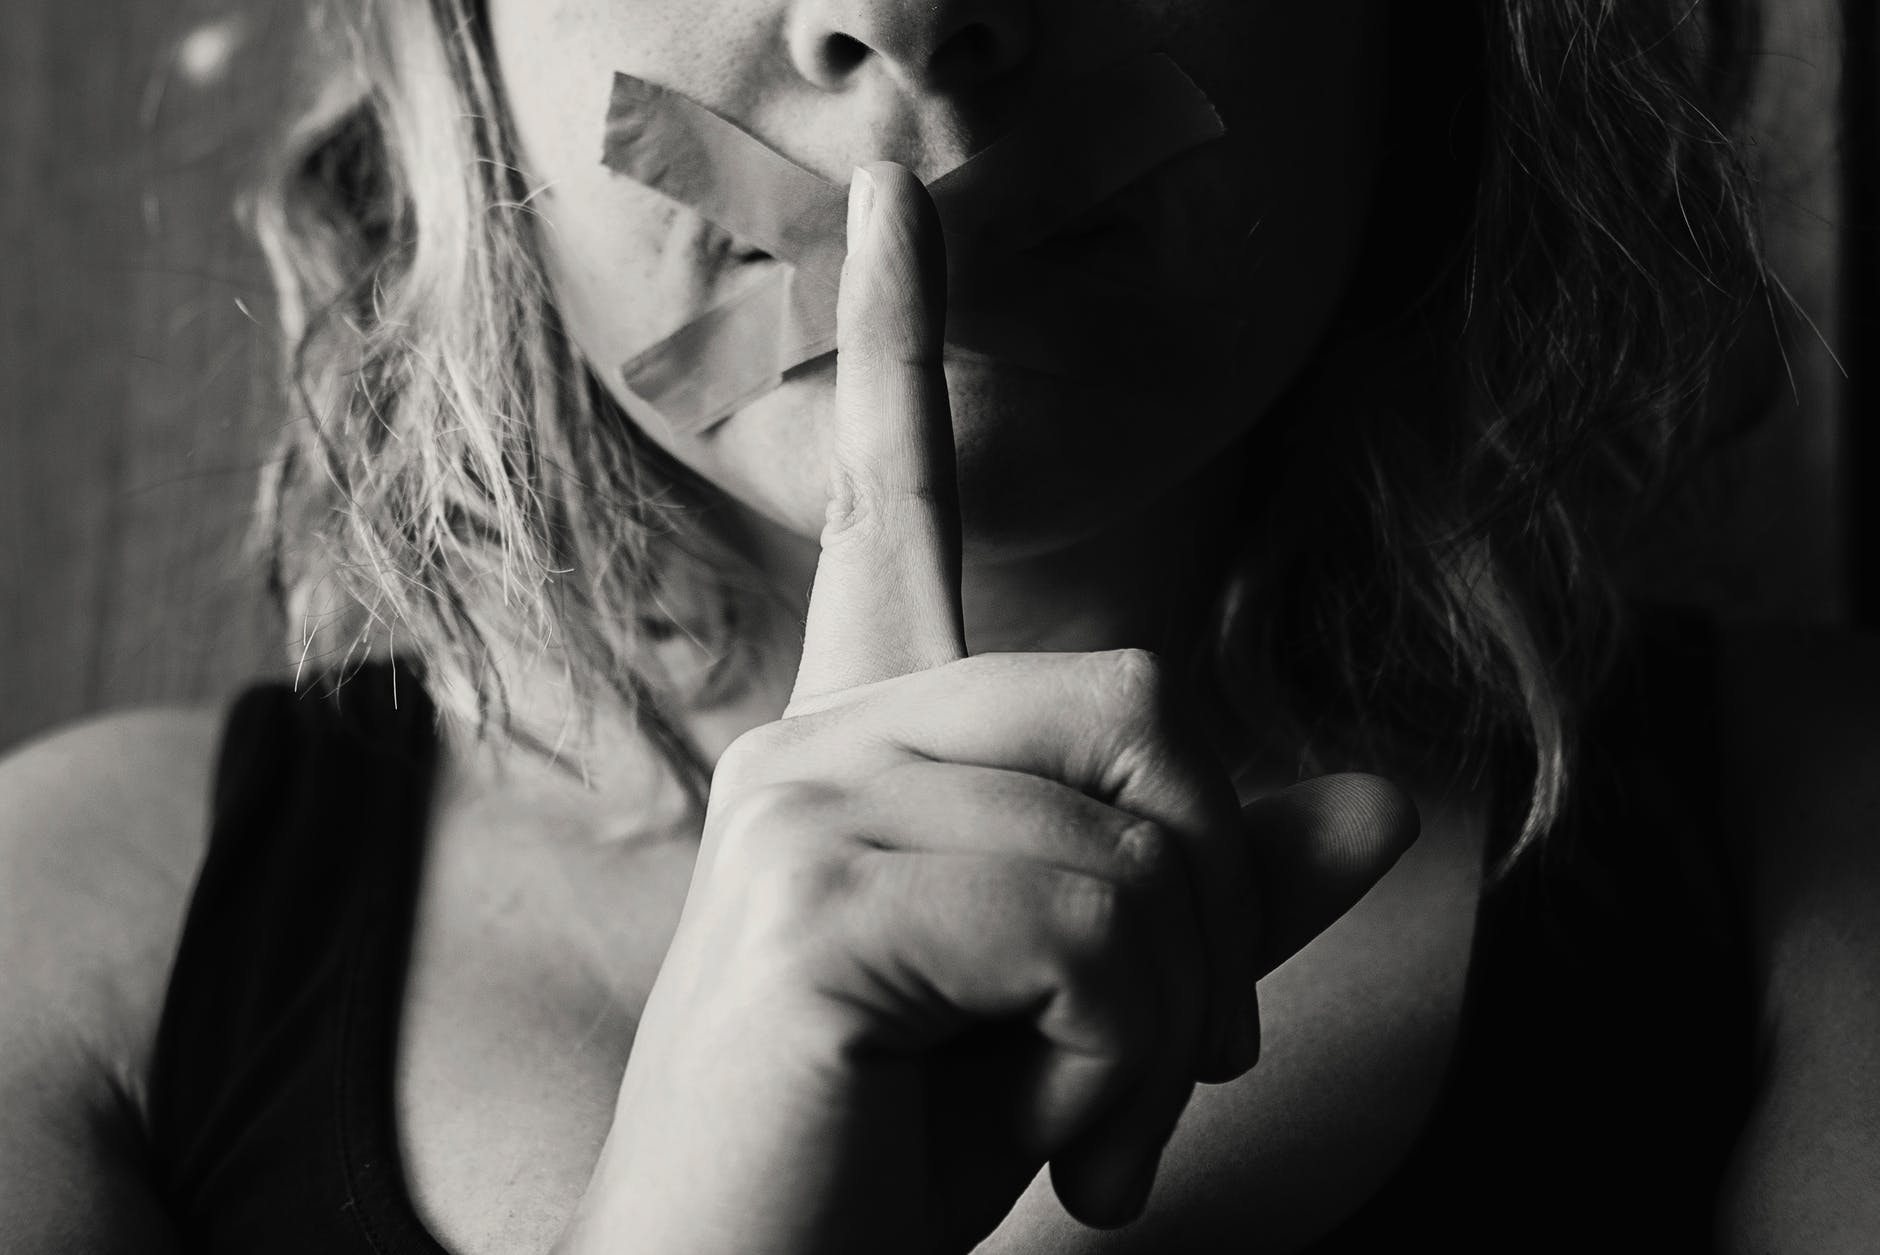 woman with tape over her mouth and finger to her mouth shushing